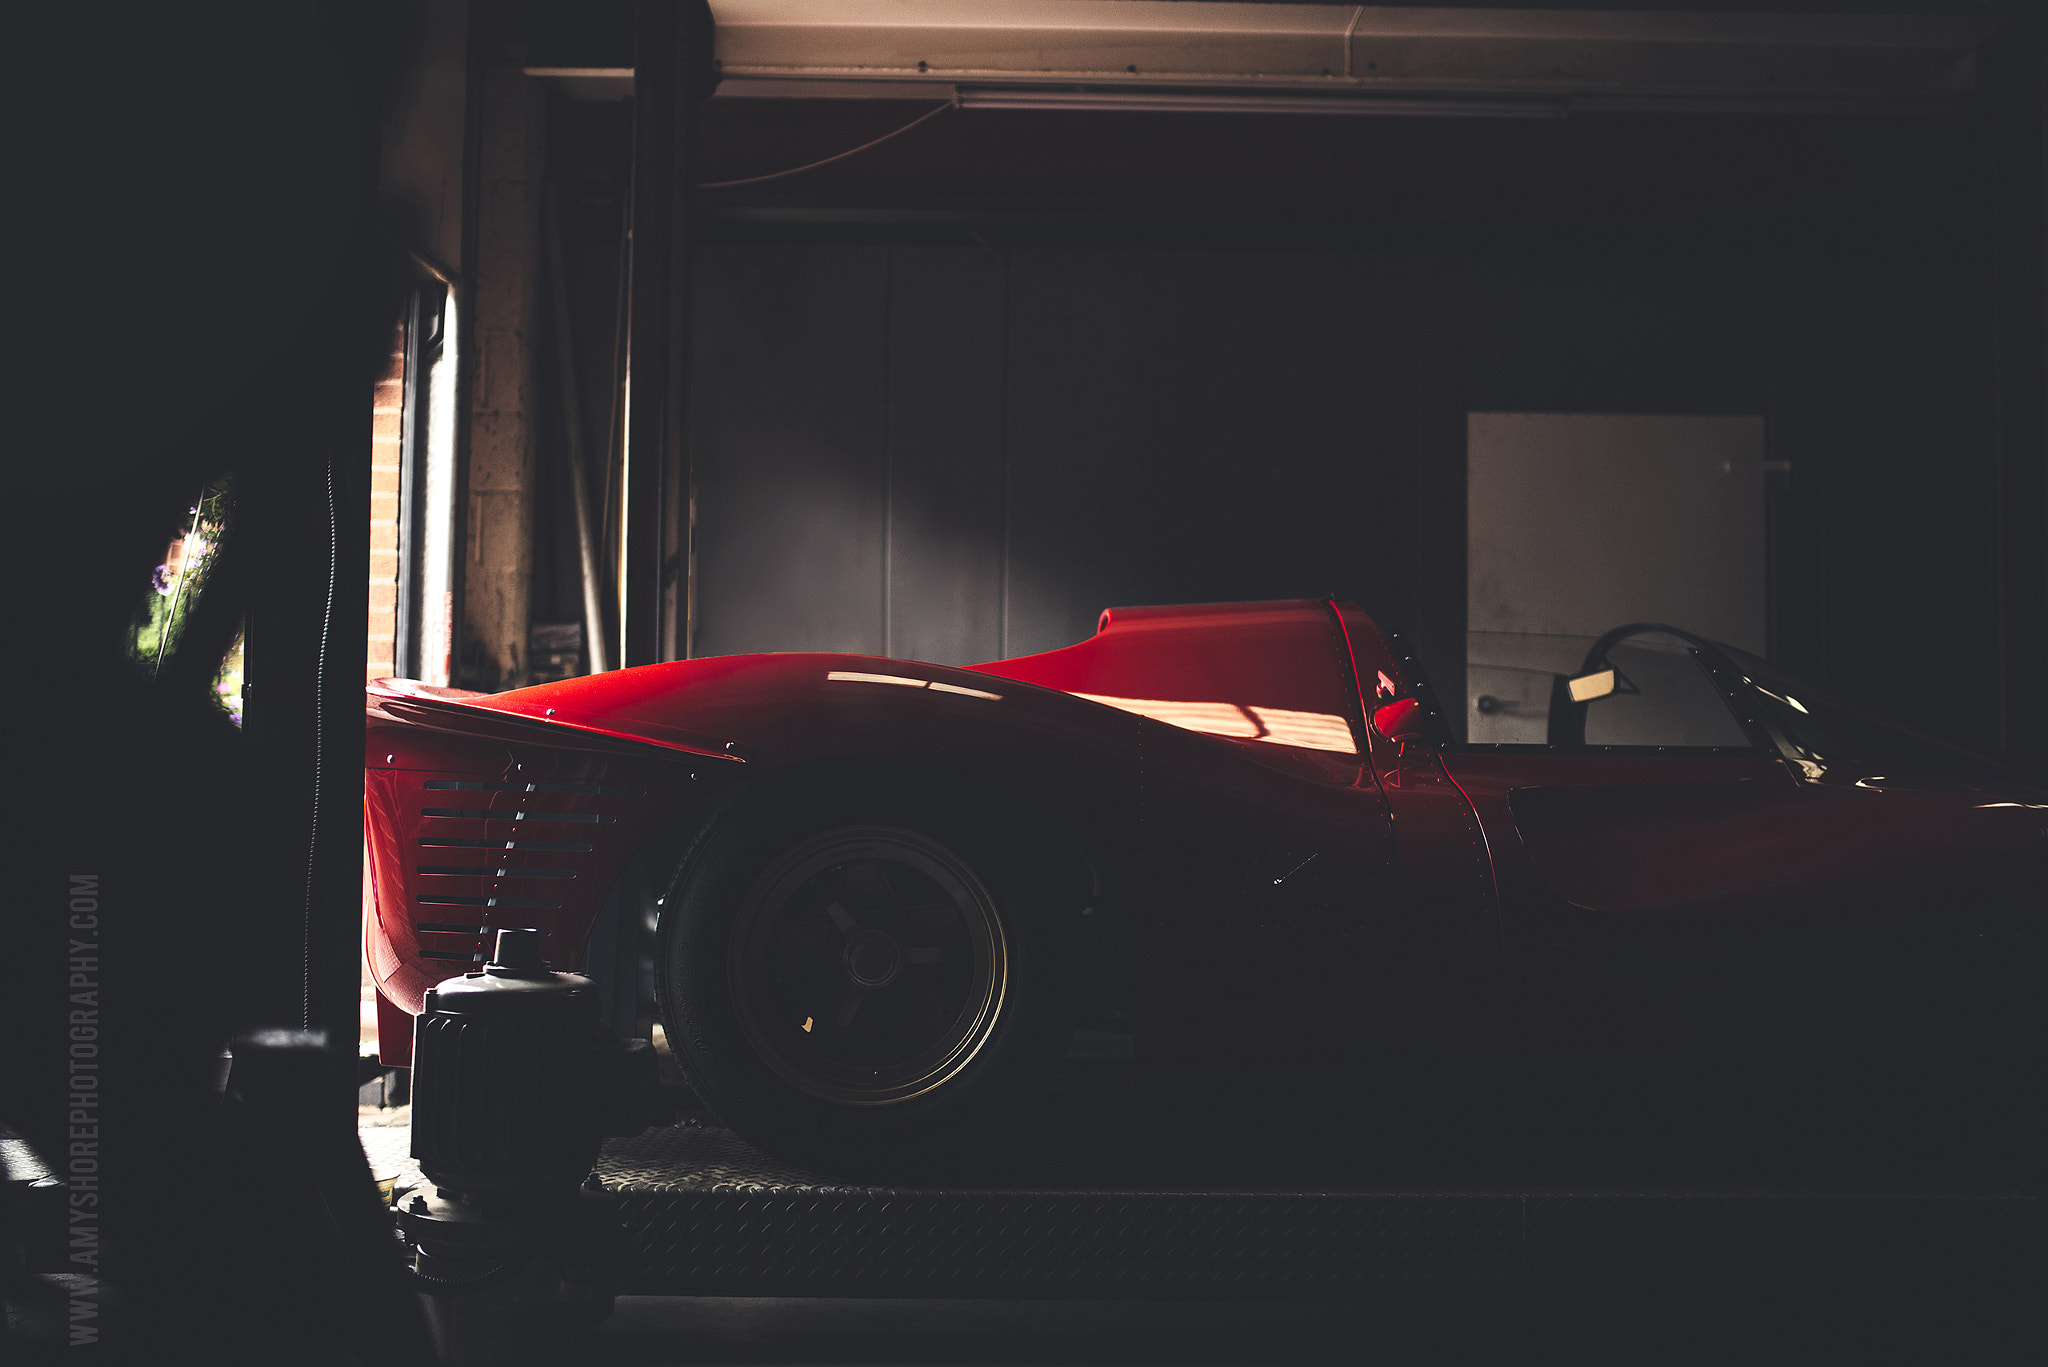 Photograph Ferrari P4 by Amy Shore on 500px